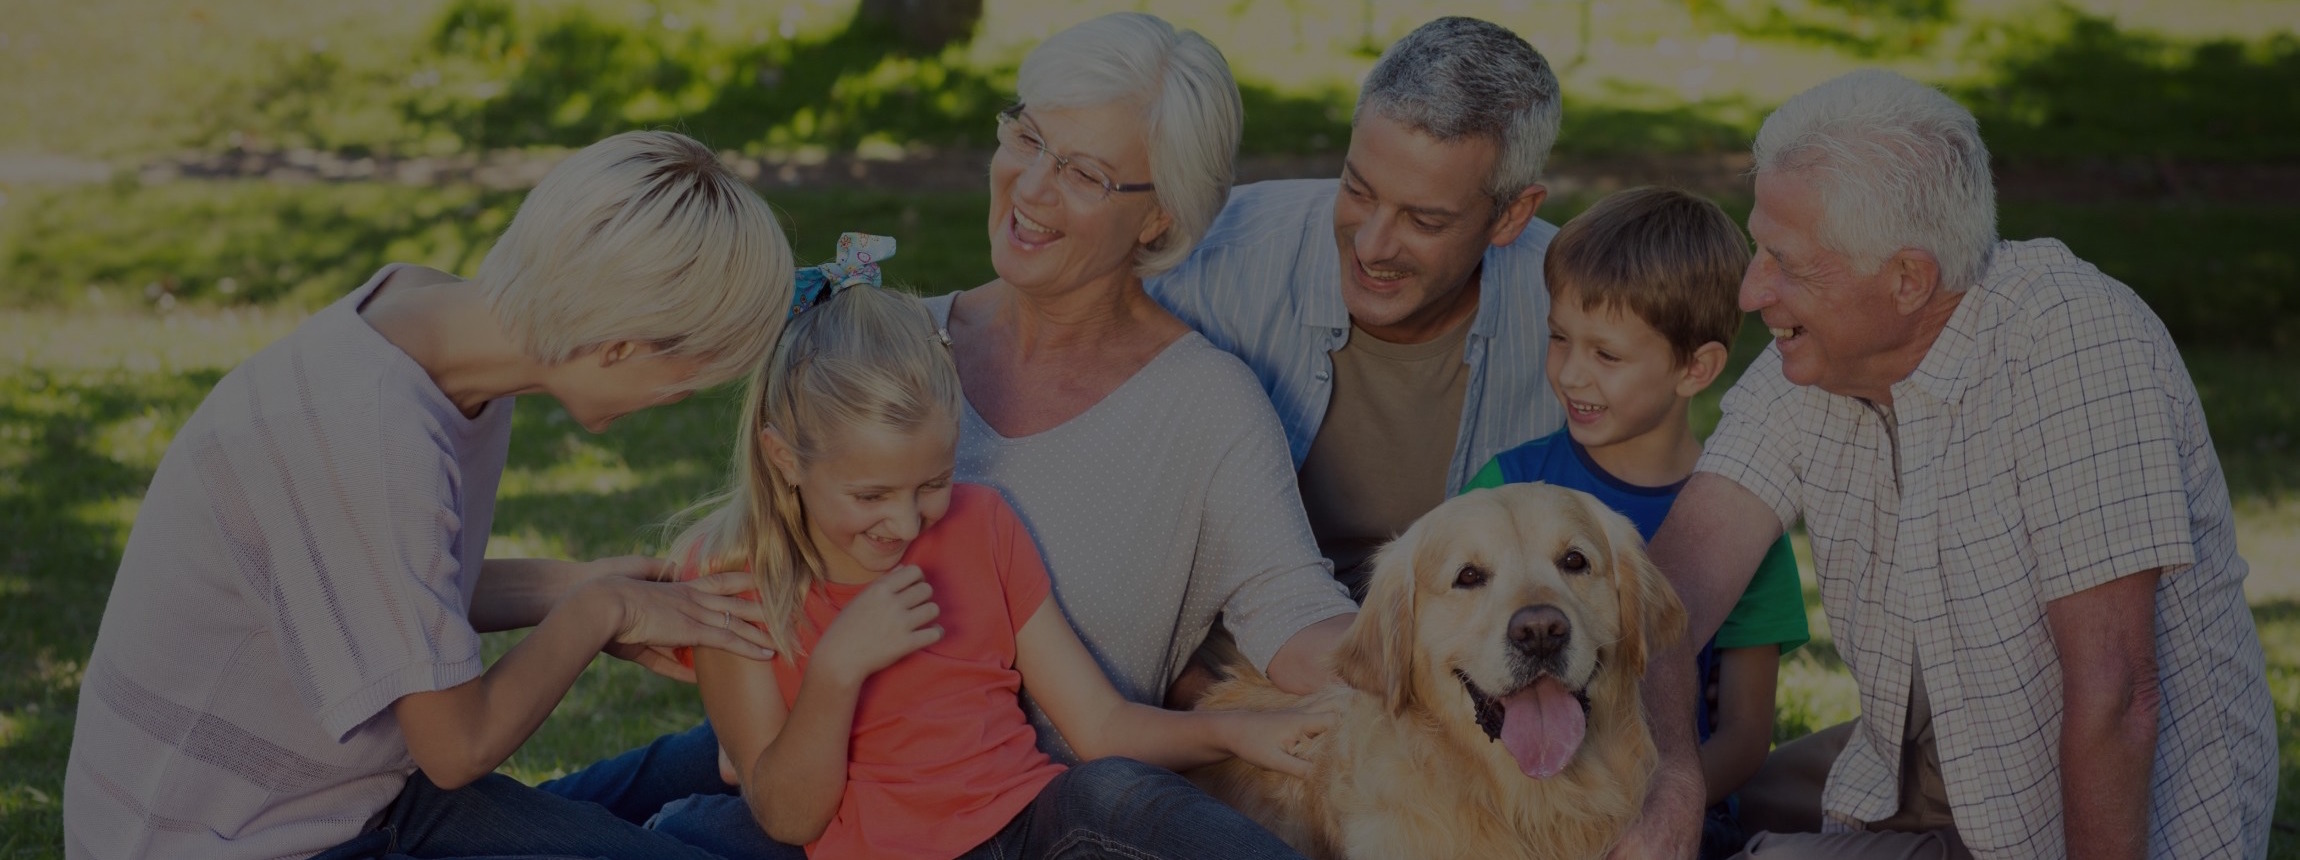 financial planning and wealth management happy family with dog